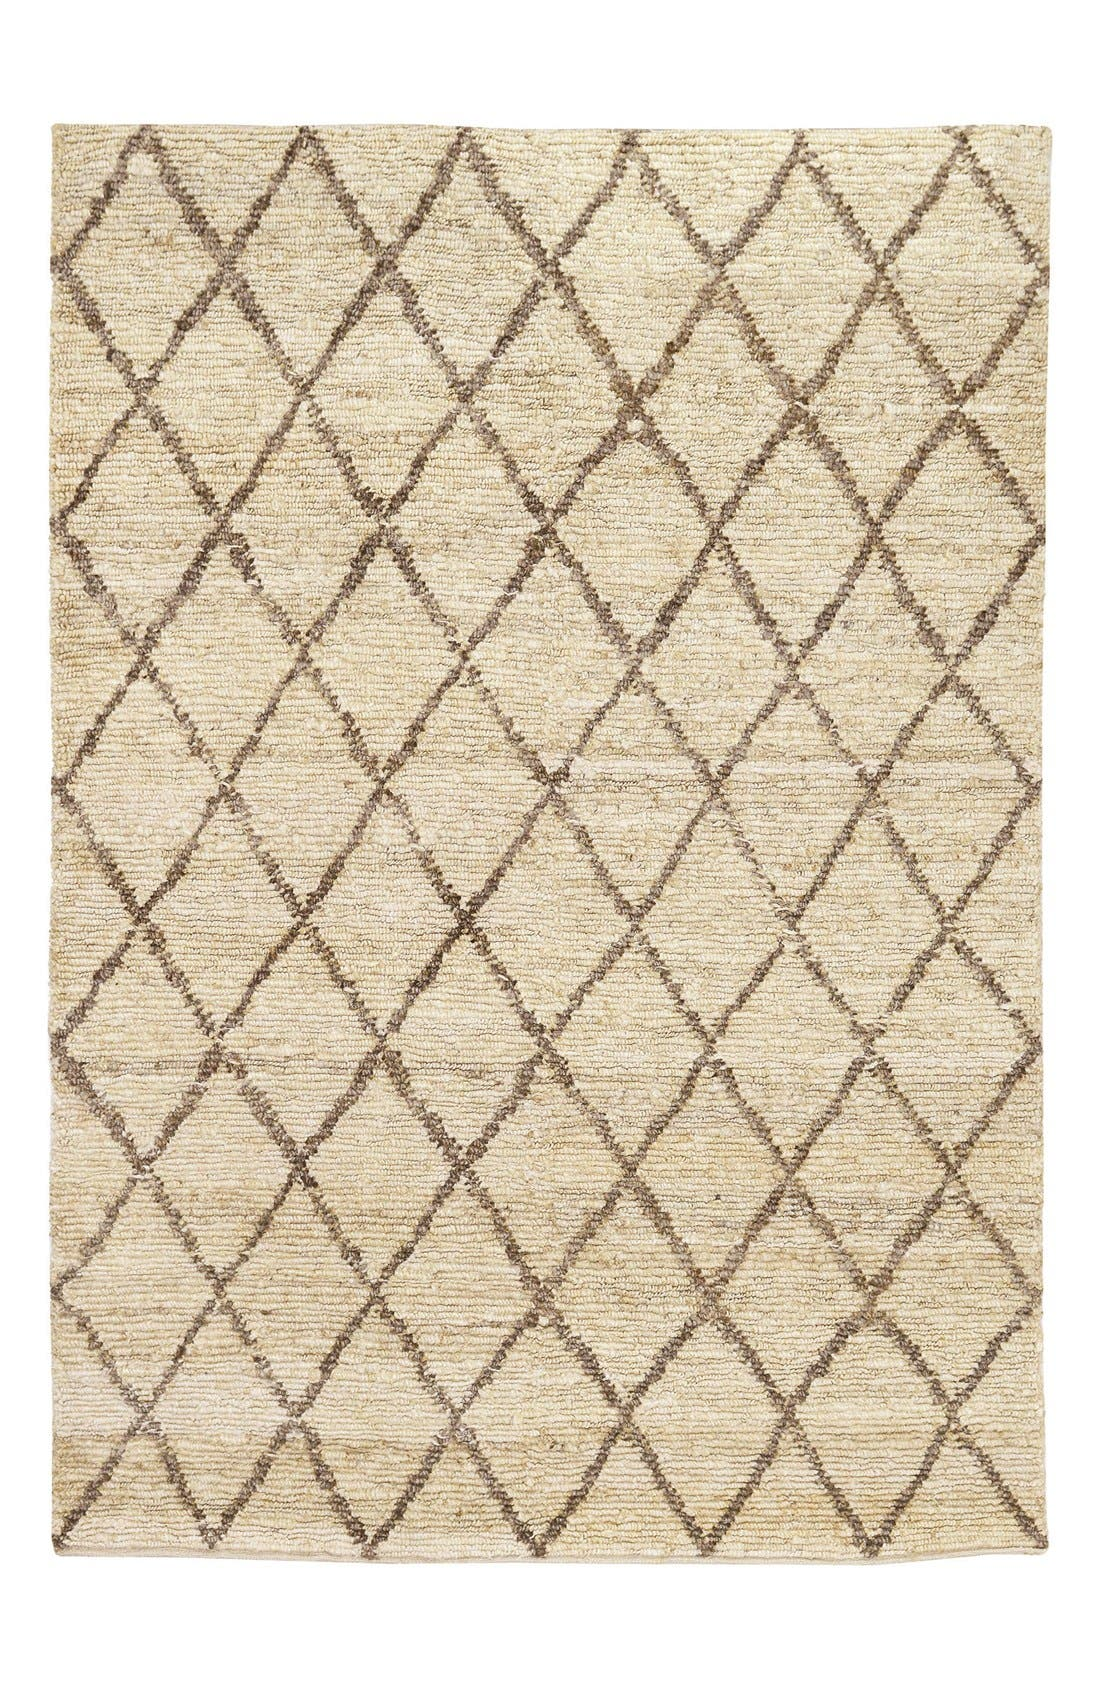 'Silky Loop' Rug,                             Main thumbnail 1, color,                             250